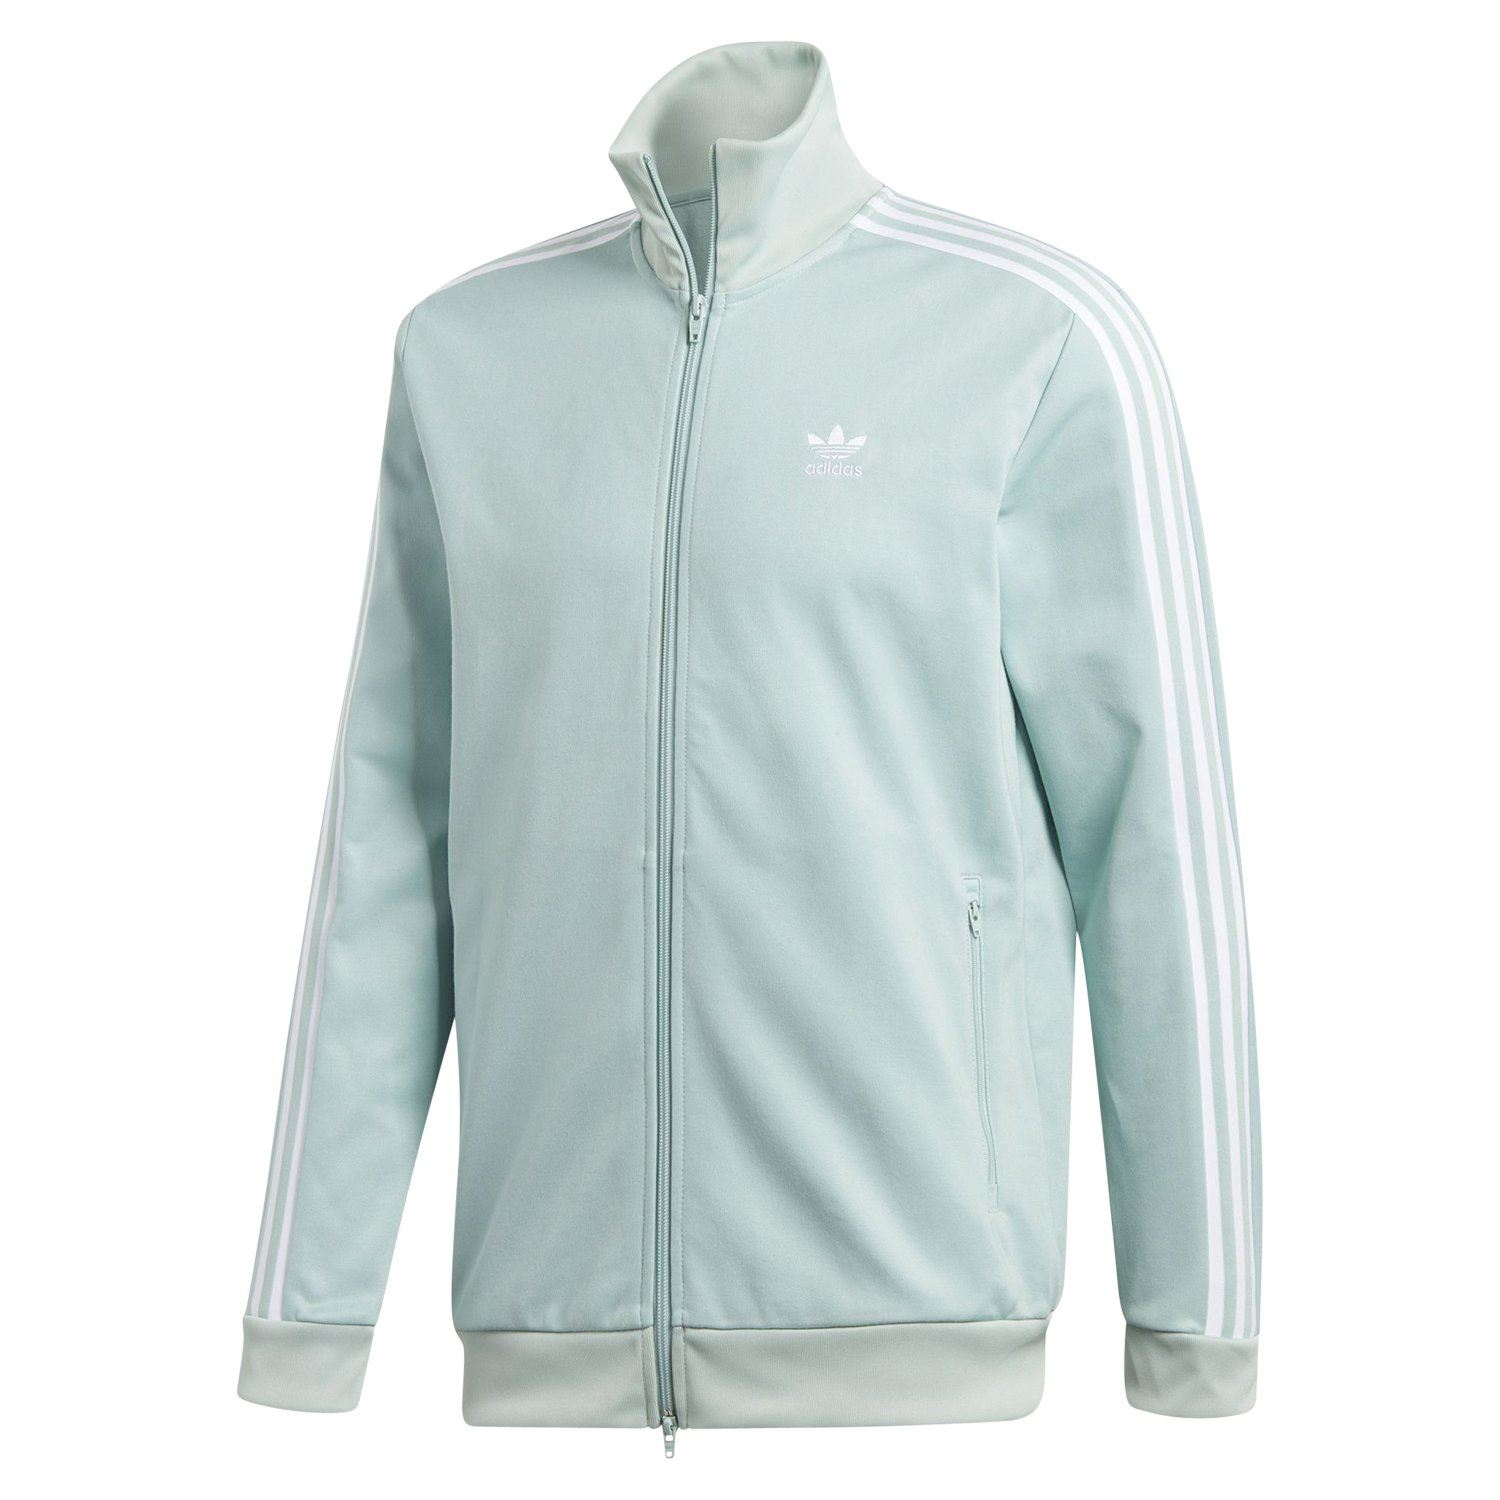 18d3296f3ee Details about adidas ORIGINALS BECKENBAUER TRACK JACKET ASH GREEN TOP FULL  ZIP RETRO 80S